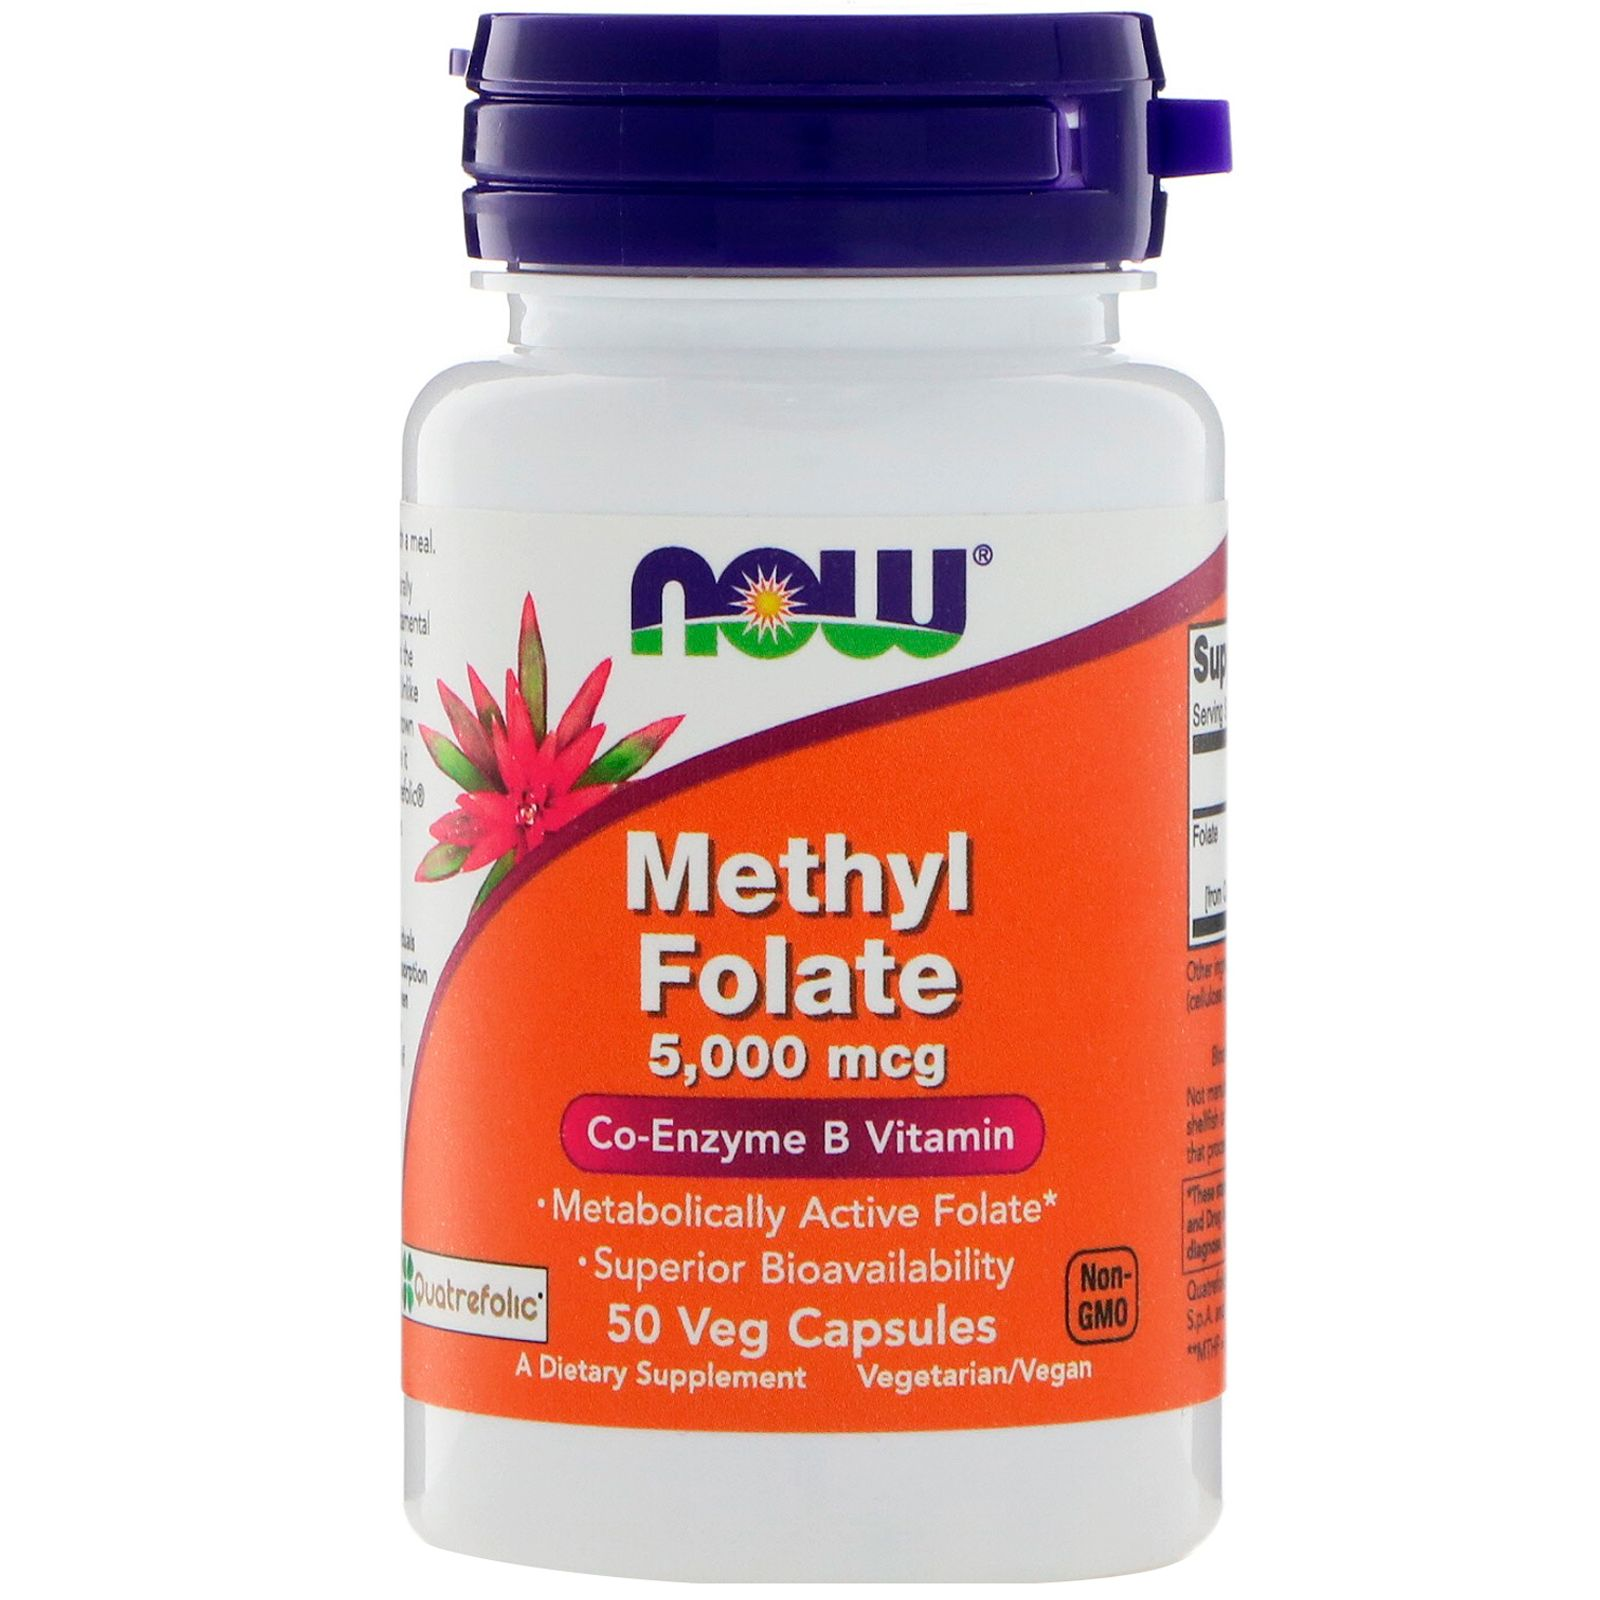 Methyl Folate, Метил Фолат, Витамин B Коэнзим Now Foods 5000 мкг, 50 капсул